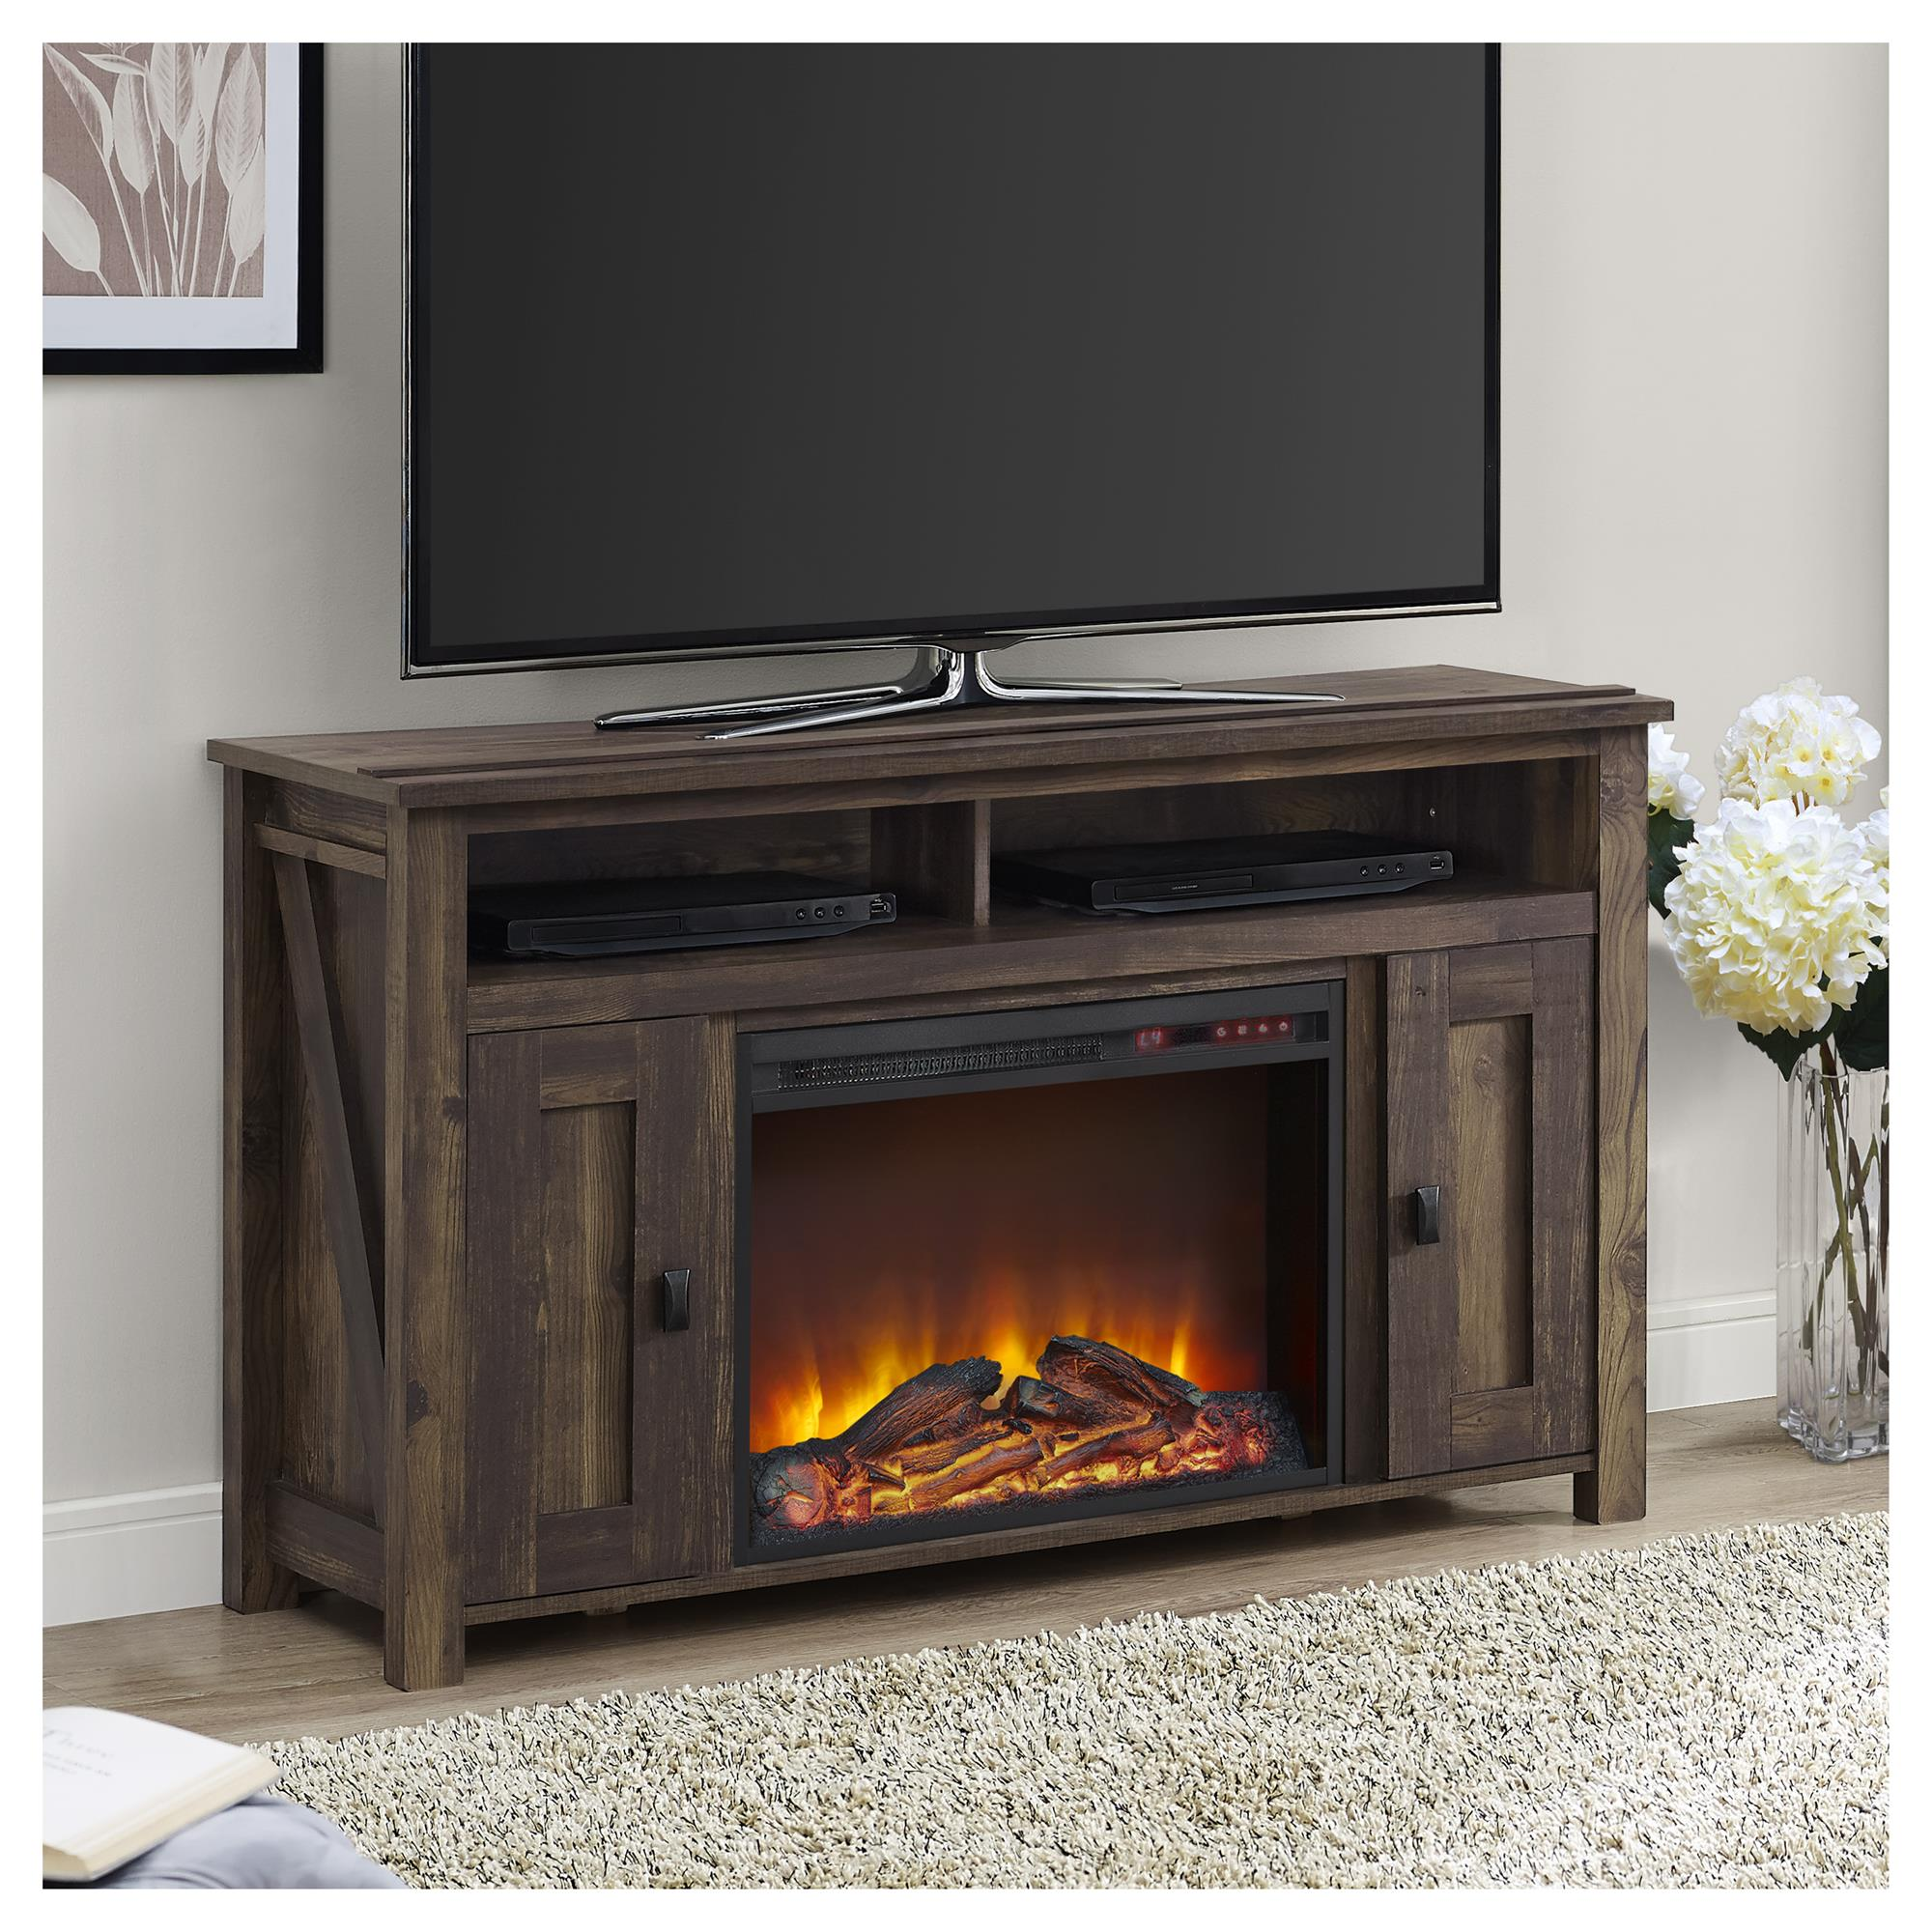 Carlington Electric Fireplace New Farmington Electric Fireplace Tv Console for Tvs Up to 50